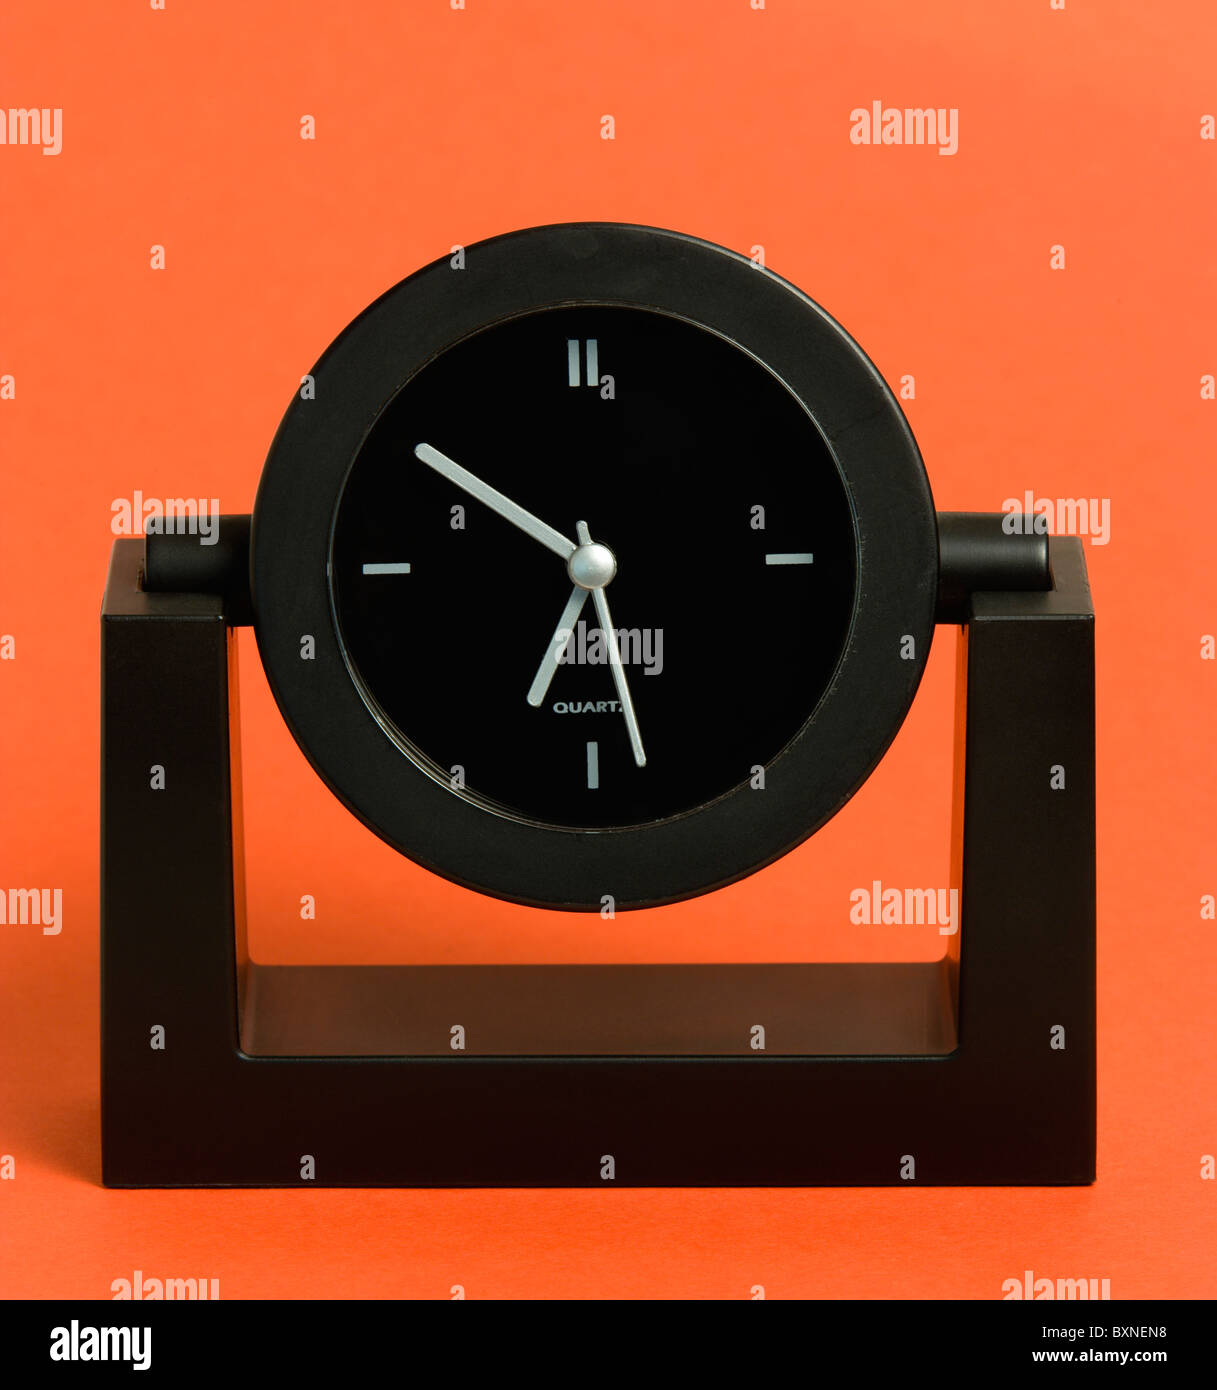 Time, Clocks, Analogue, Battery powered black analogue quartz table or desk clock against a red background. - Stock Image